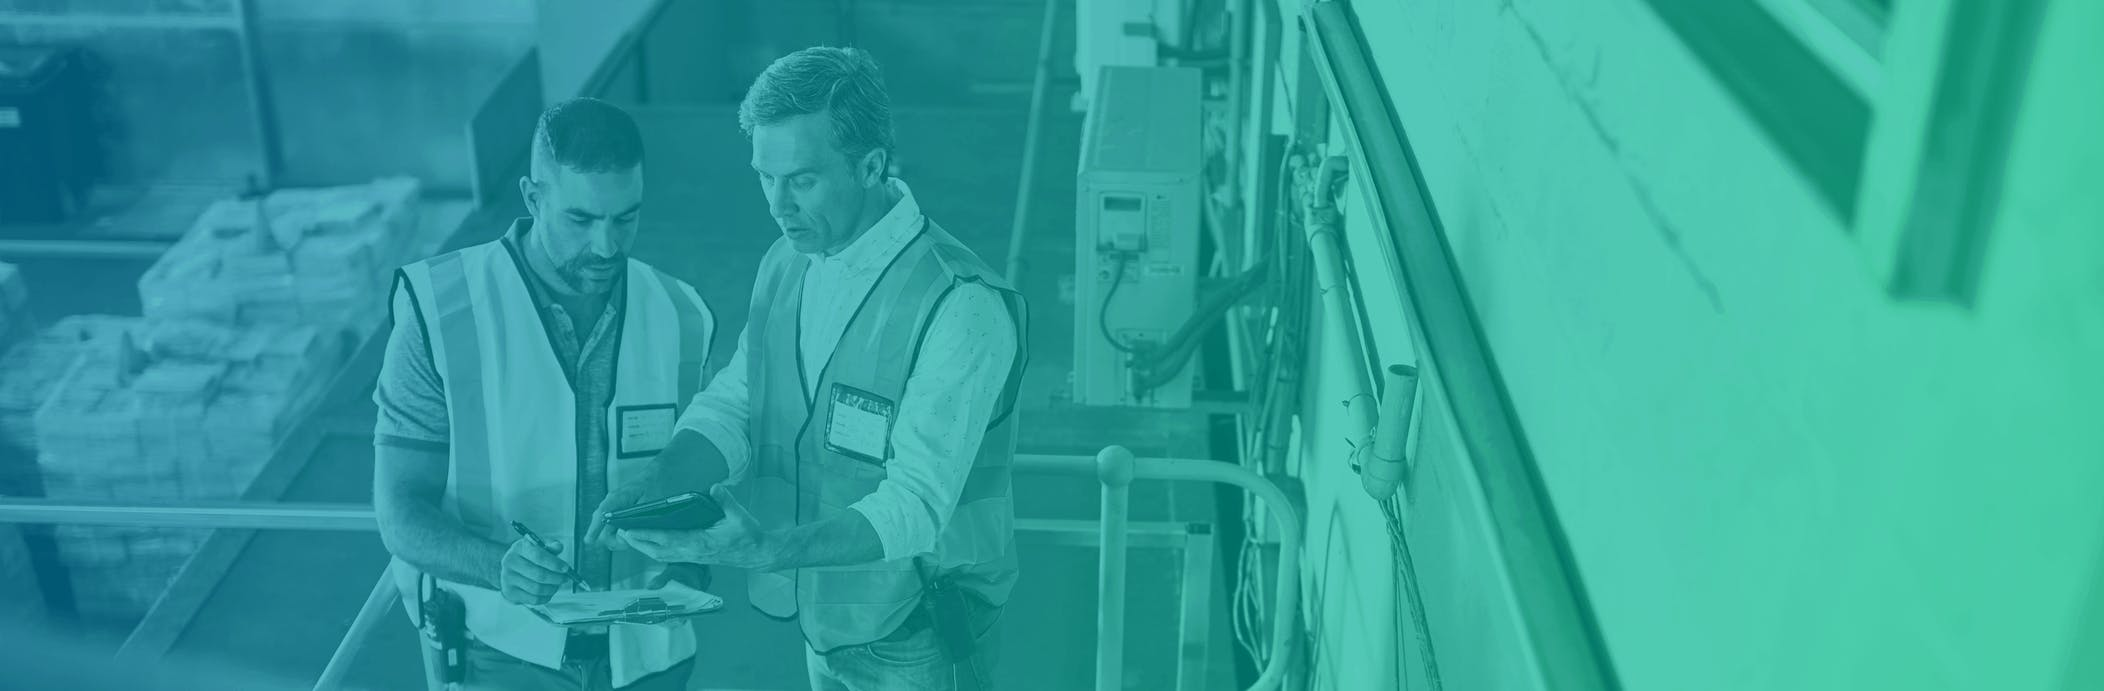 Remove the hassle from OSHA electronic safety reporting